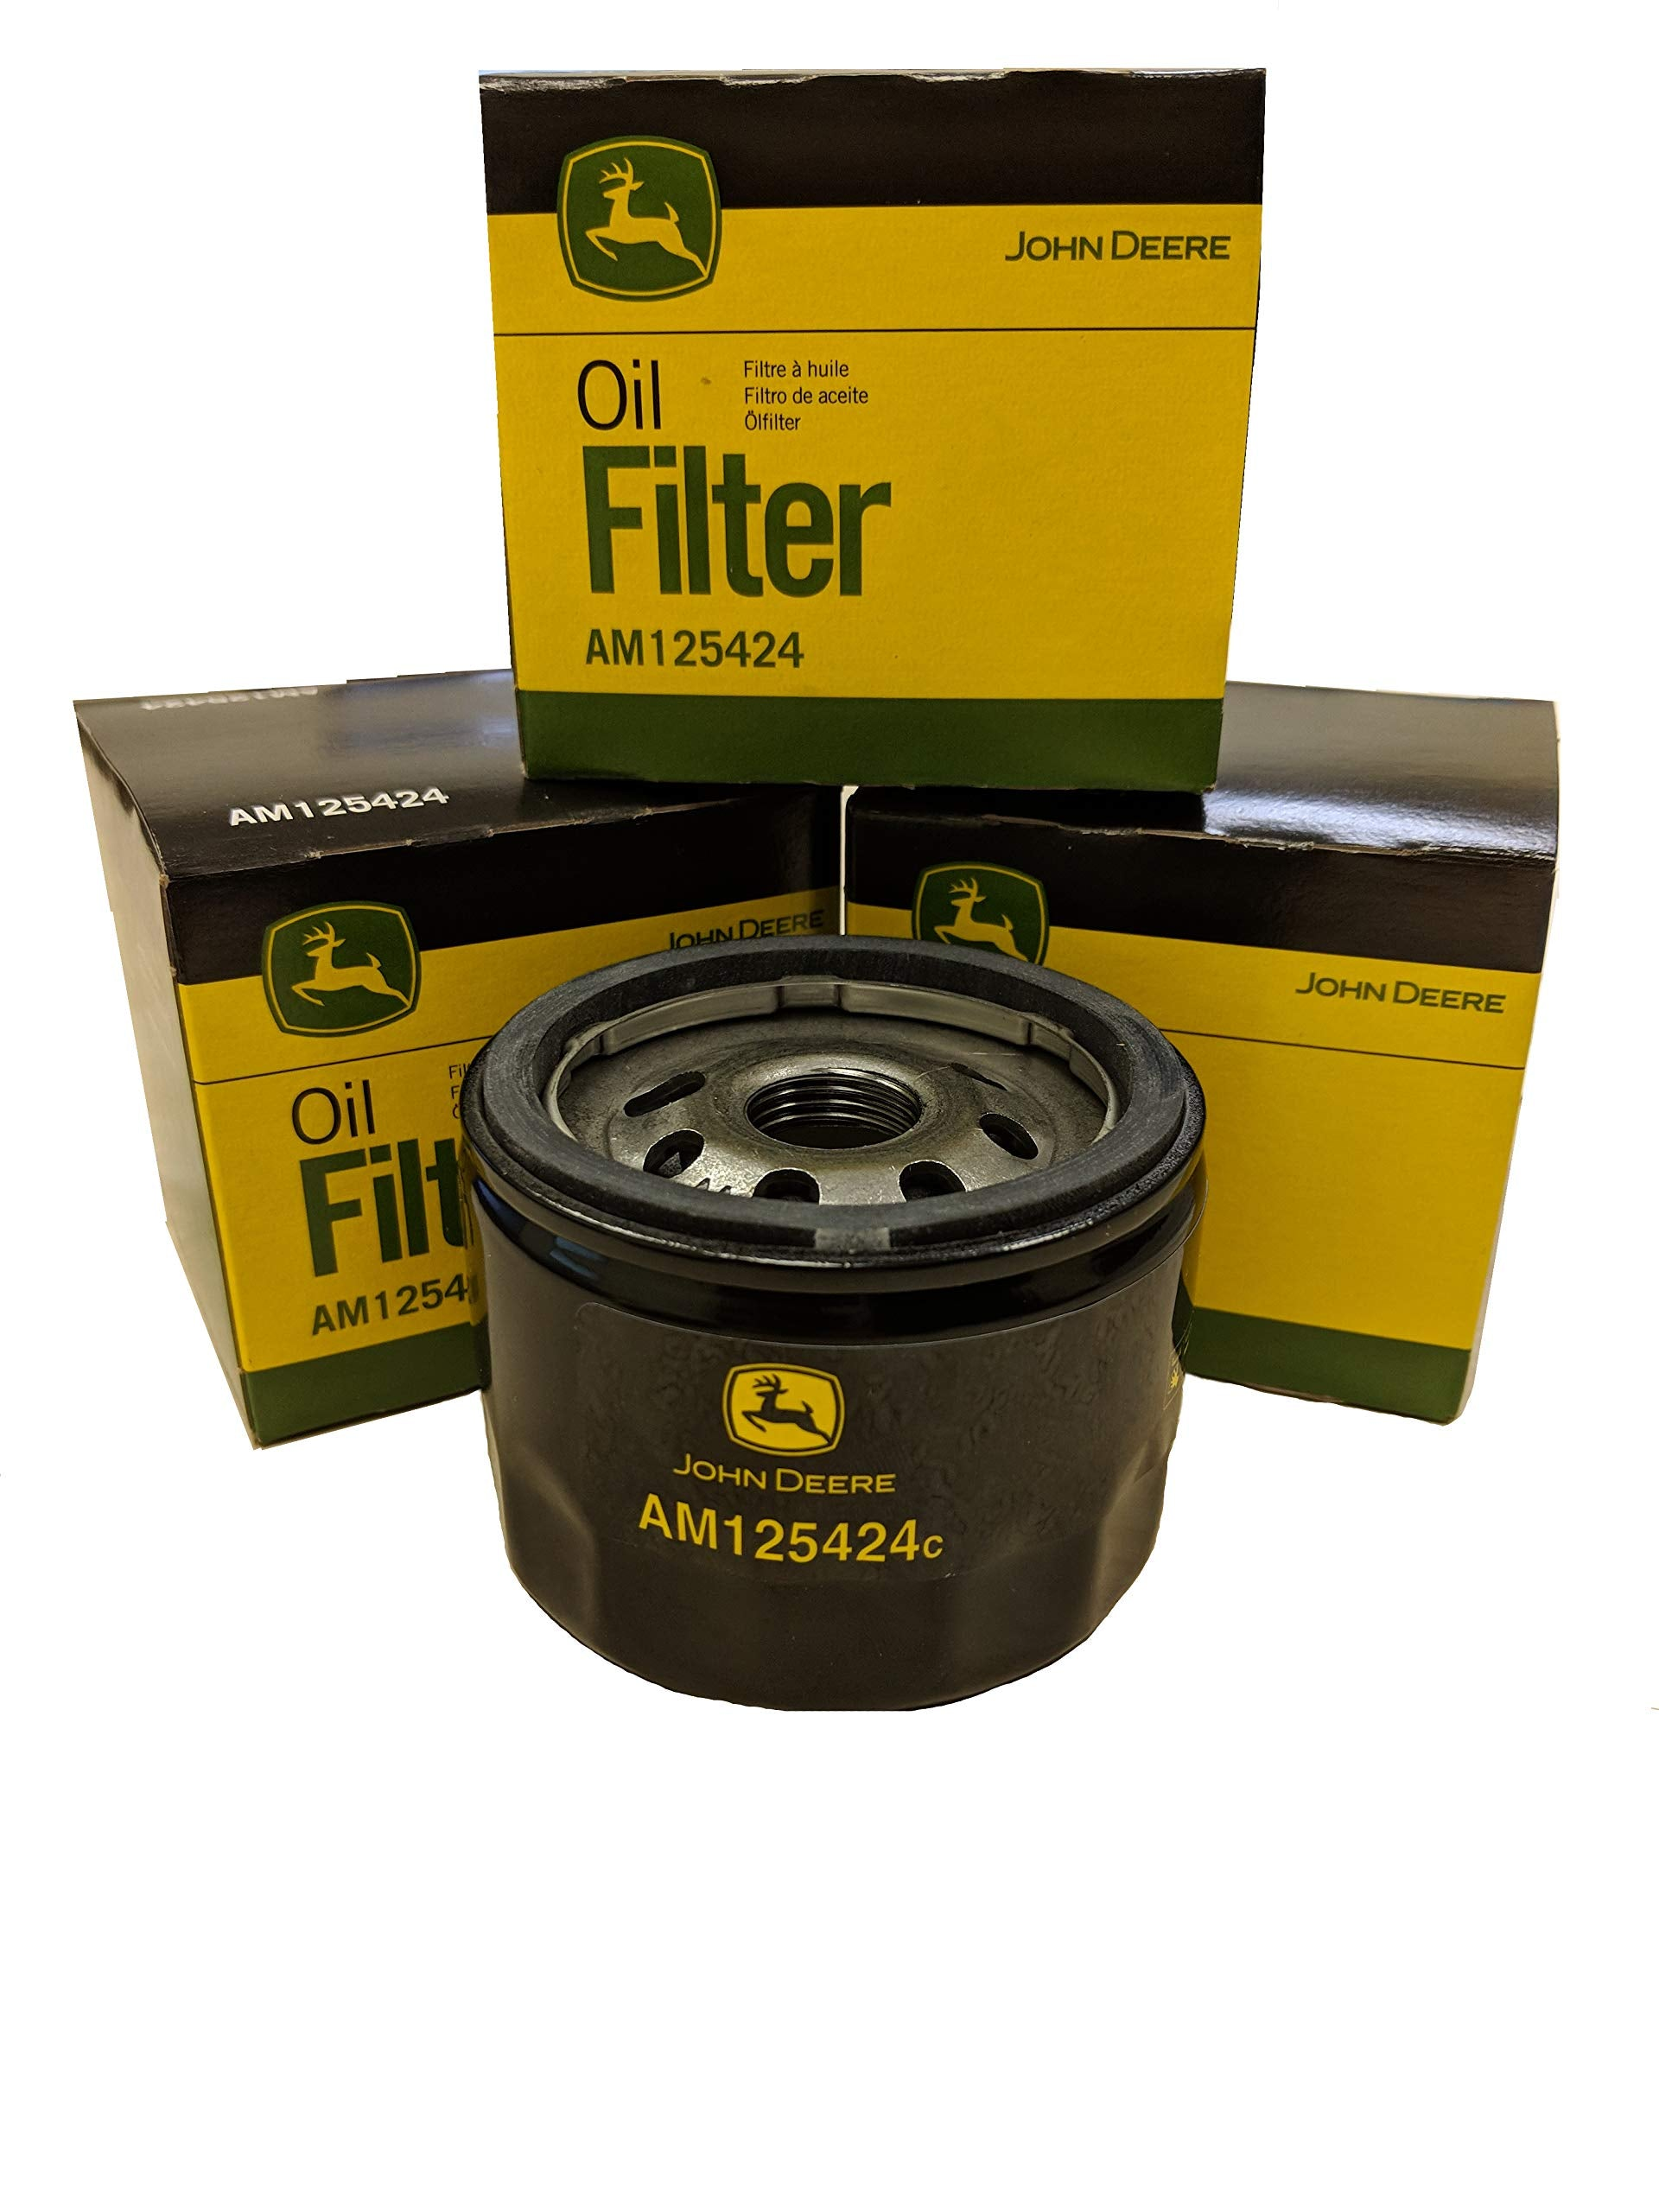 John Deere Original Equipment Package of Three Oil Filters - AM125424 (3)